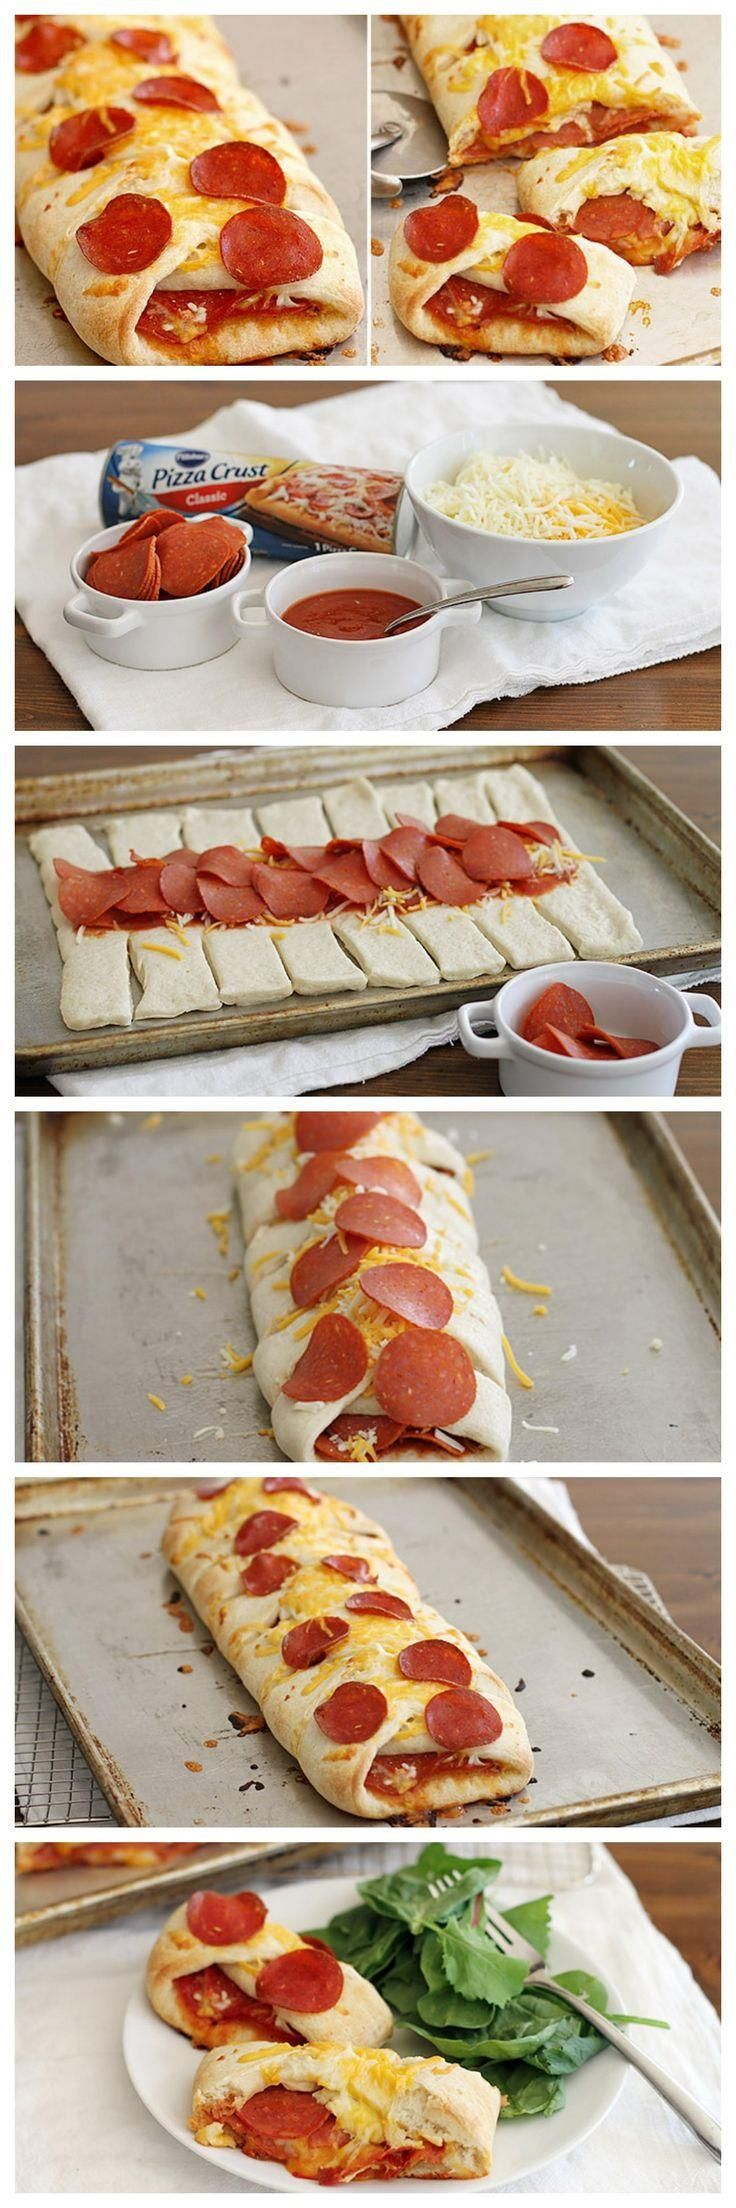 Pepperoni Pizza Braid      This delicious Pepperoni Pizza Braid recipe is a wonderful alternative to an old classic. You can fill it with pepperoni or add some Italian Sausage or pepperoncini peppers. It really doesn't matter what you stuff it with, it will bake up perfectly every time.  .  . . The complete list of ingredients […]  Continue reading...    The post  Pepperoni Pizza Braid  appeared first on  Olive Oil & Gum Drops .    http://oliveoilandgumdrops.com/pepperoni-pizz..